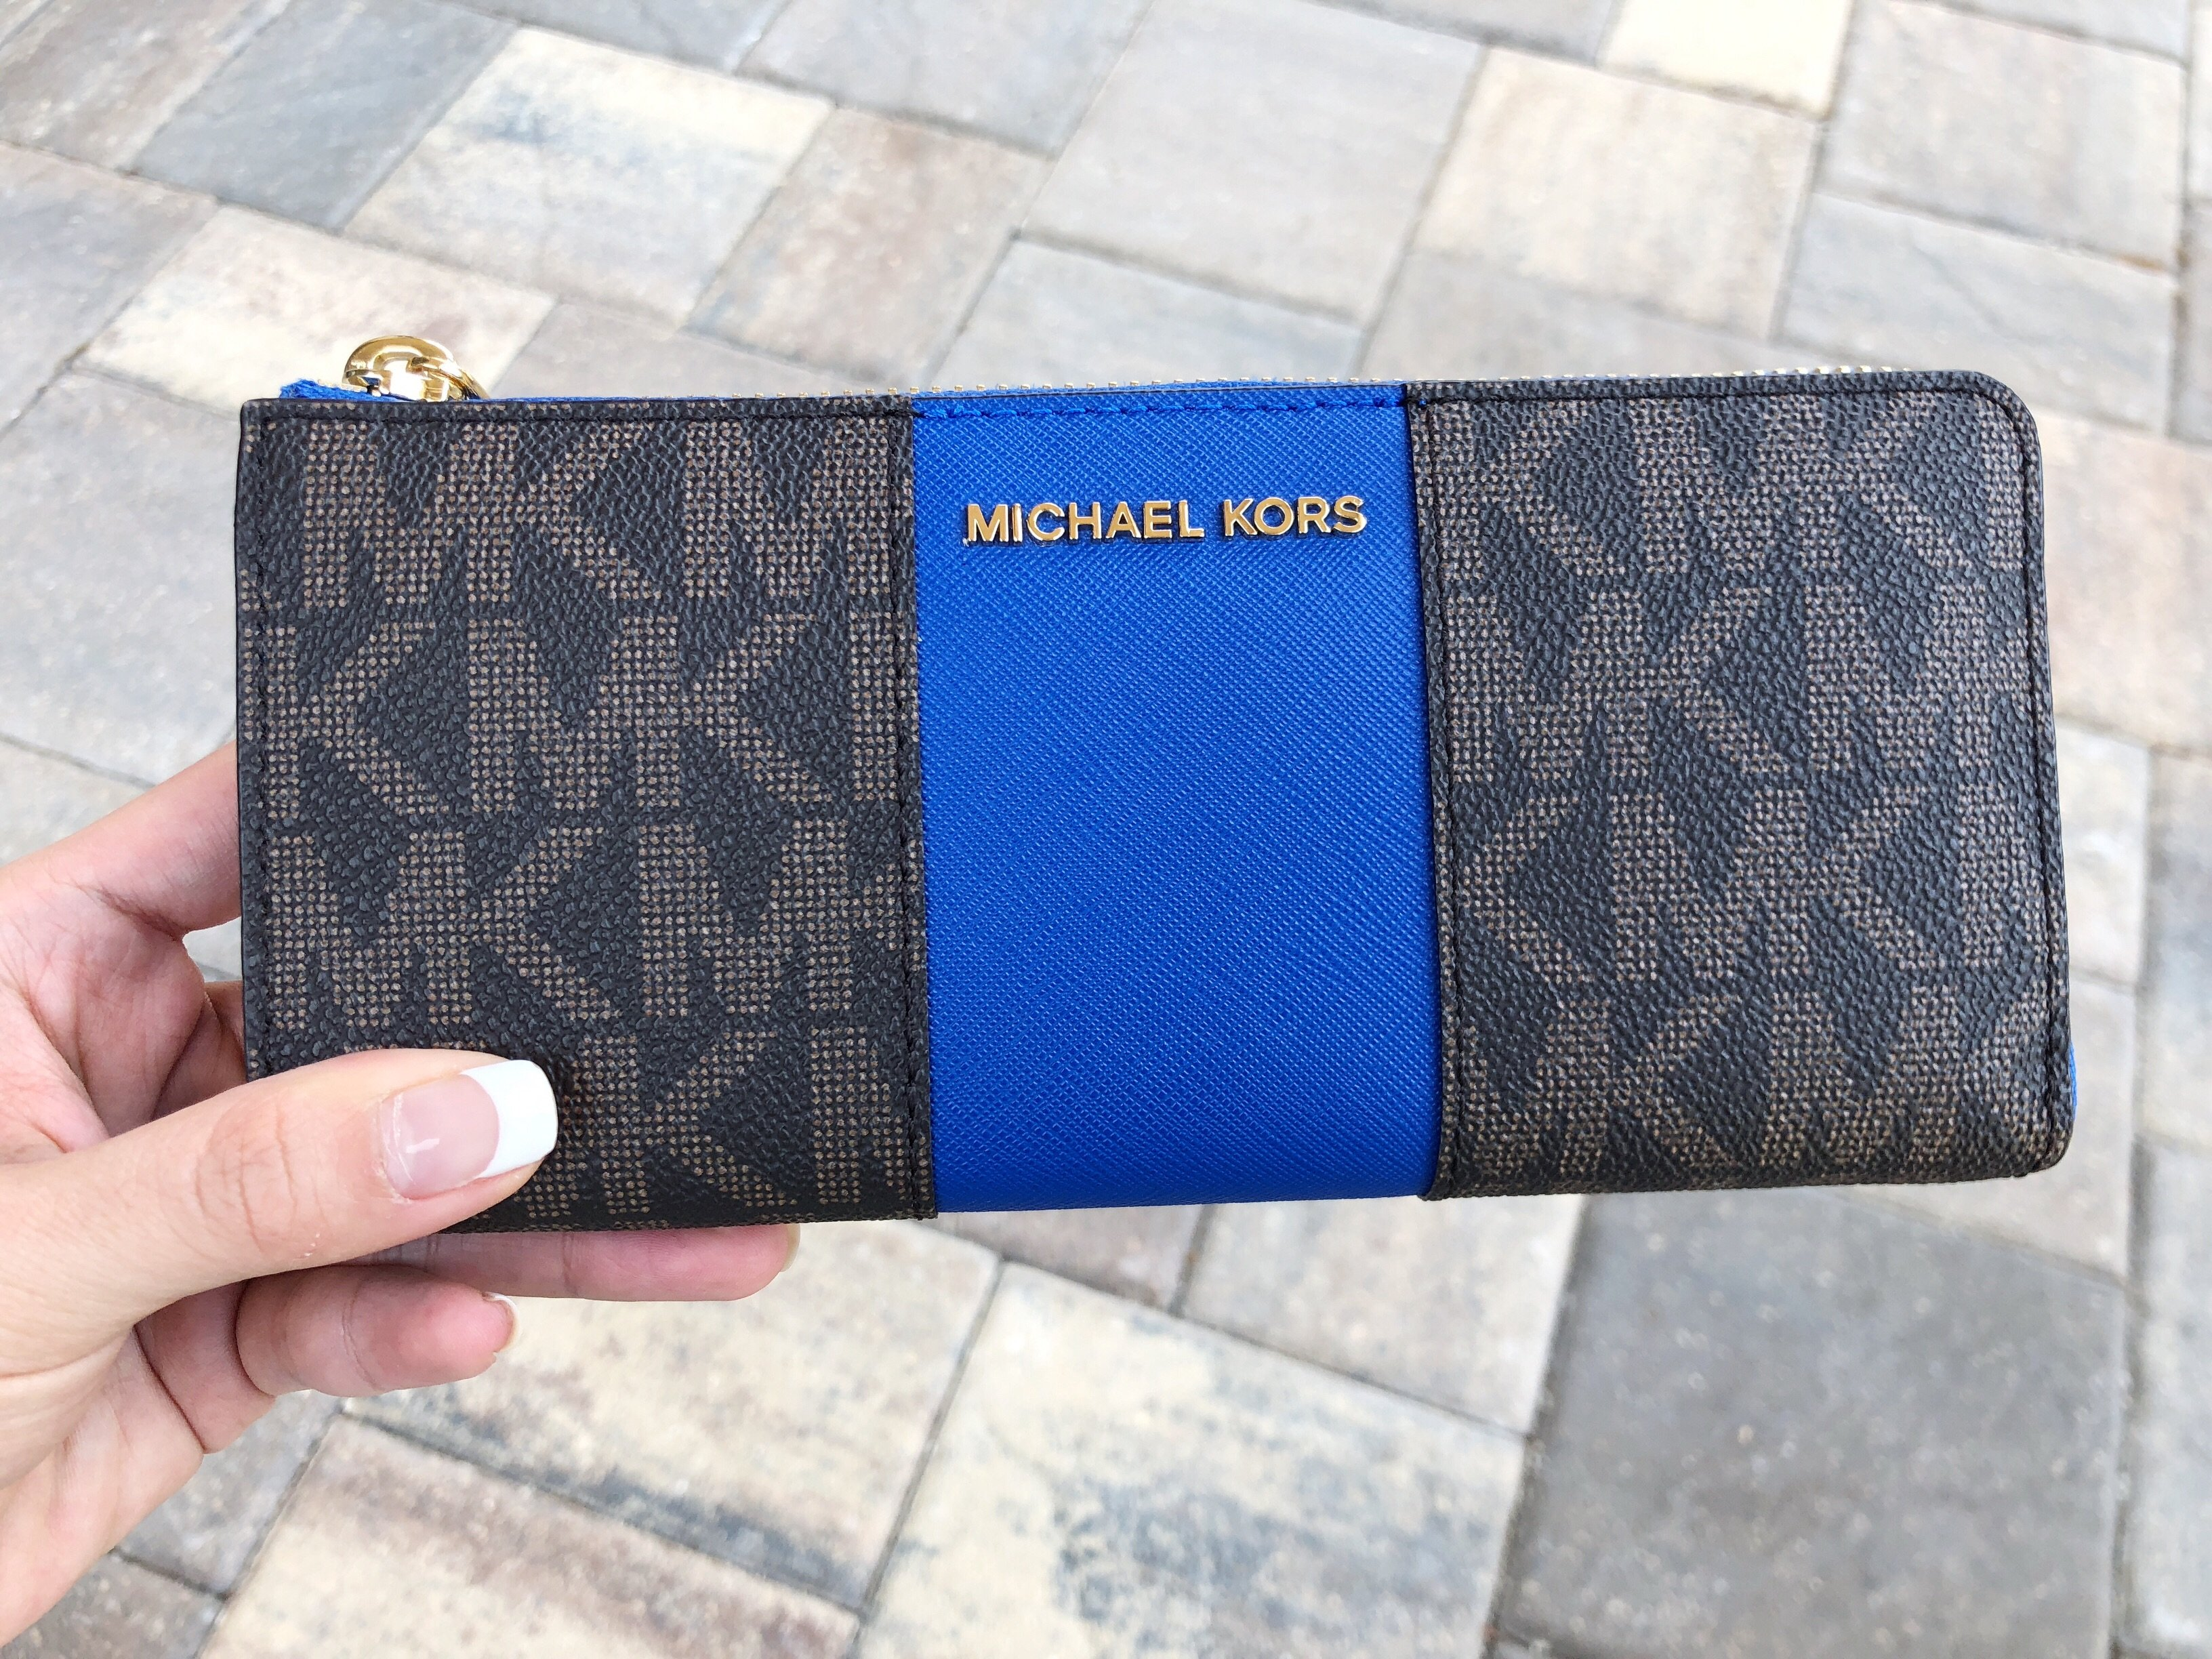 8a945bfd5e28 Michael Kors - Michael Kors Jet Set 3/4 Zip Around Continental Wallet Brown  MK Electric Blue - Walmart.com